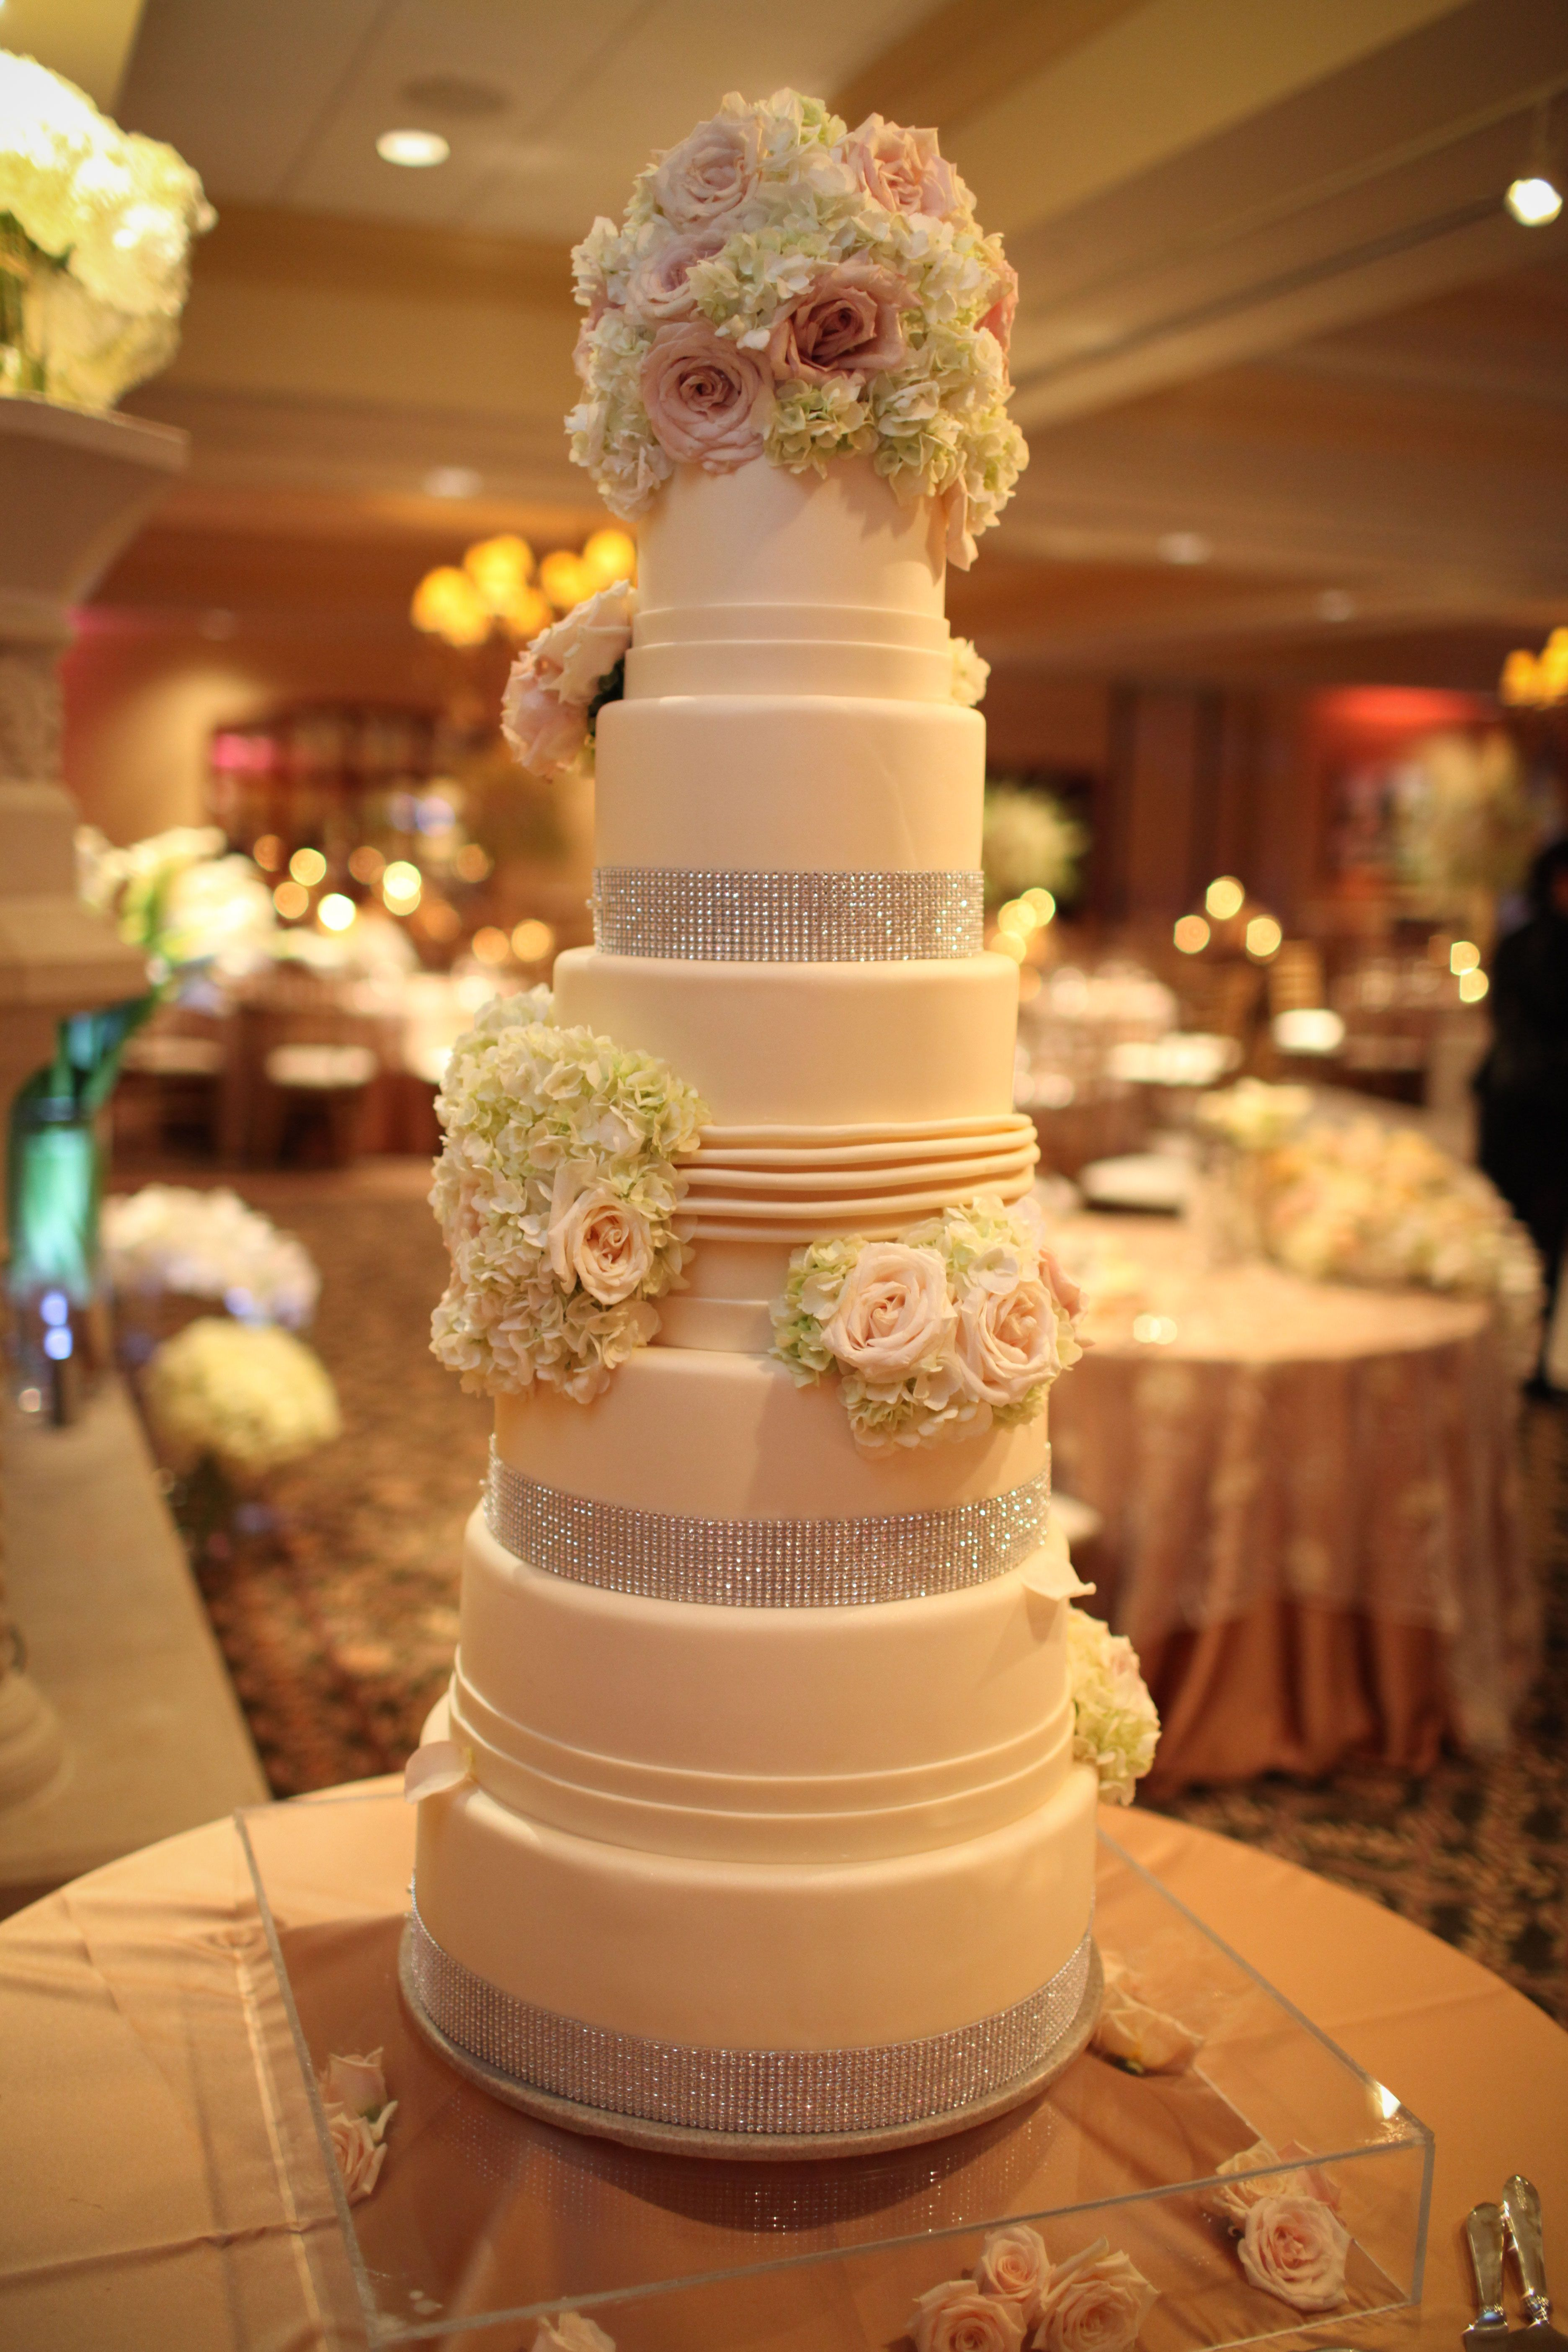 Turning Stone Wedding Cake Six Tiers Stacked And Finished In Ivory Fondant Topped With